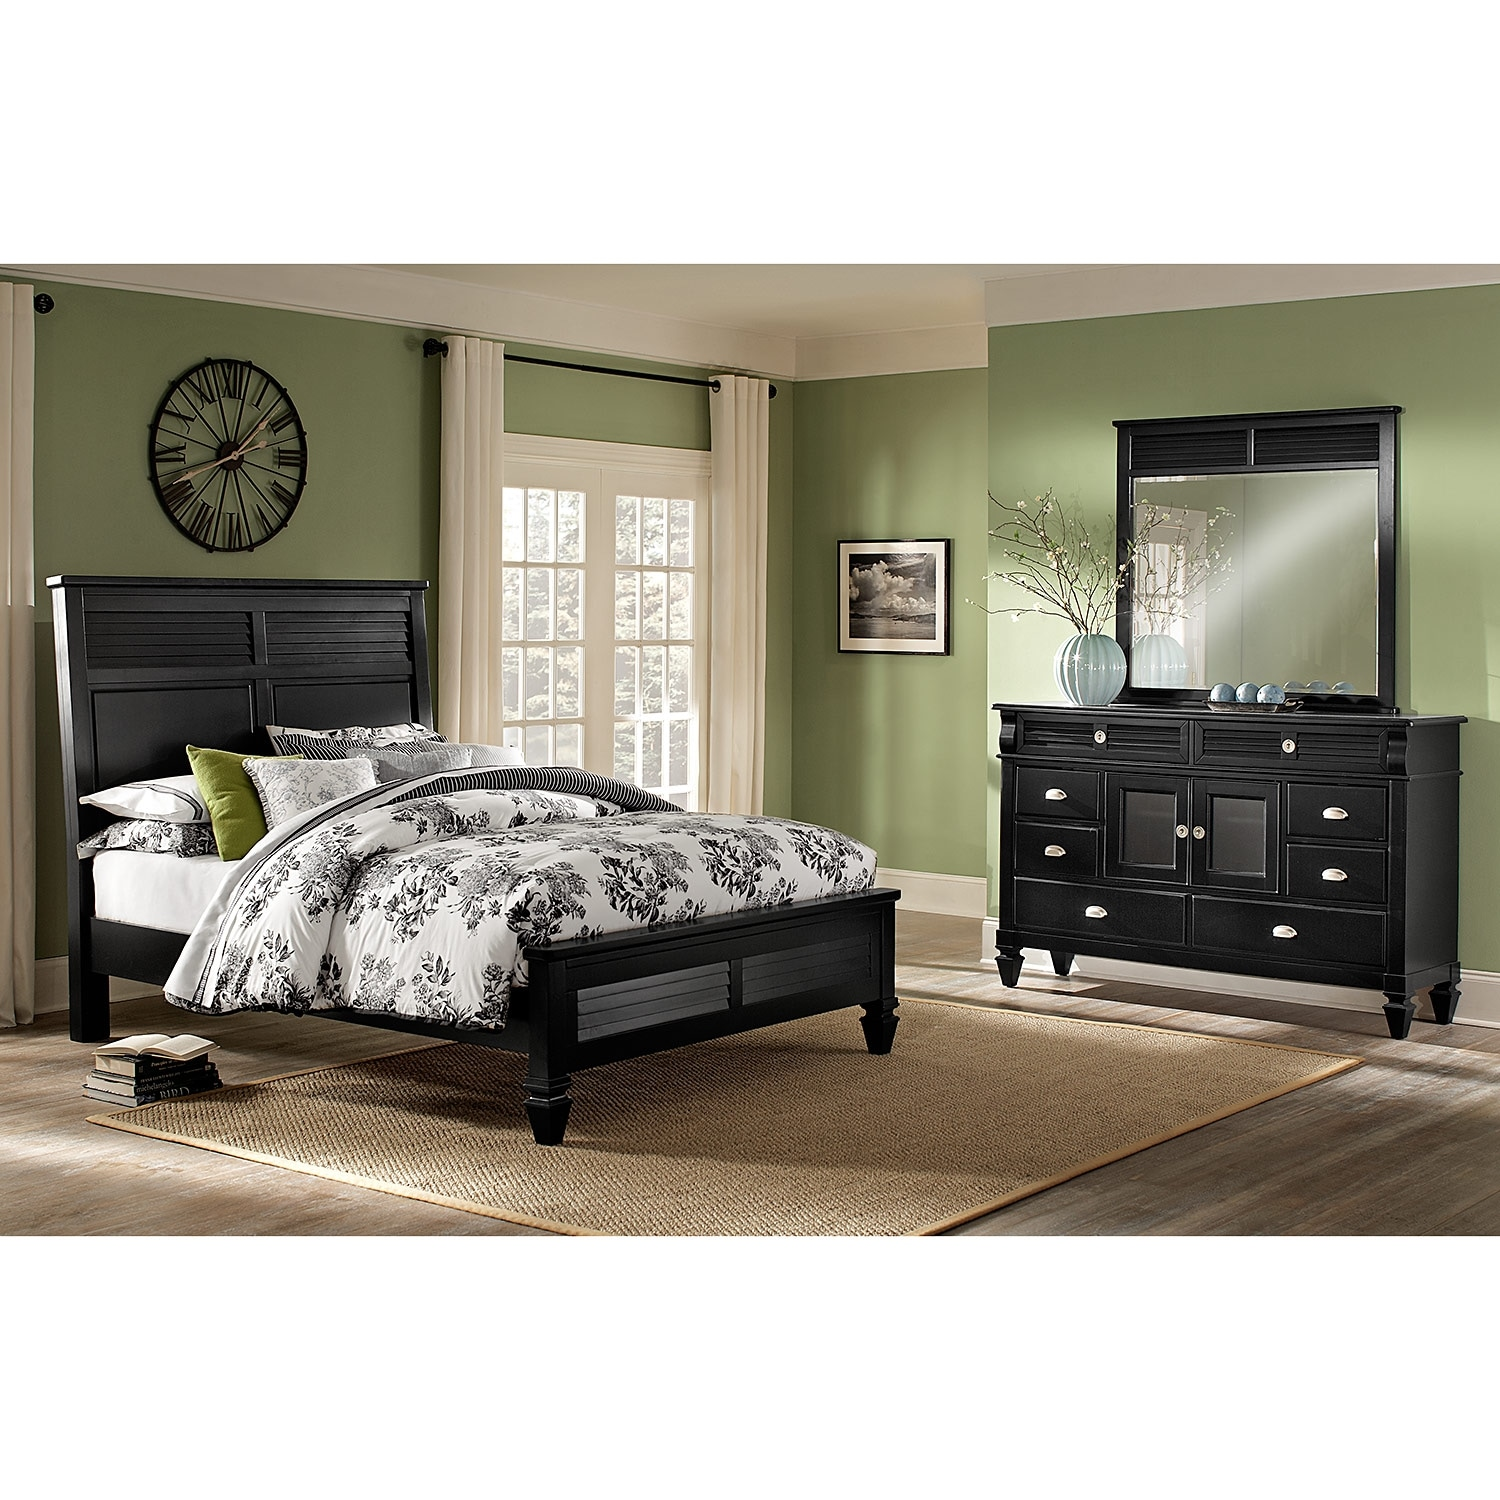 Charleston Bay Black Bedroom 5 Pc. Queen Bedroom